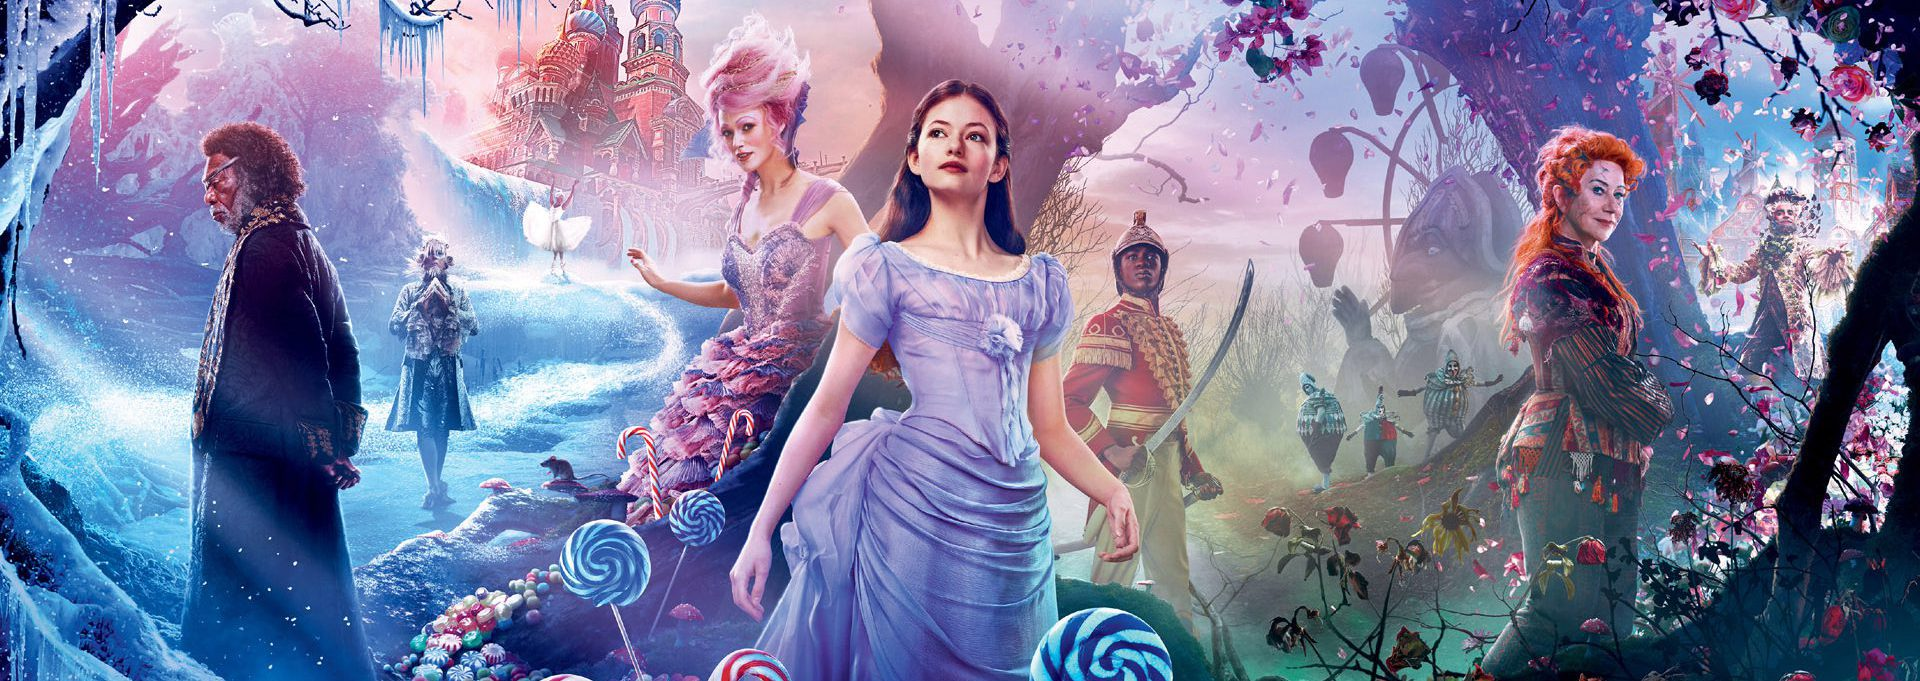 The Nutcracker and the Four Realms | Jason's Movie Blog